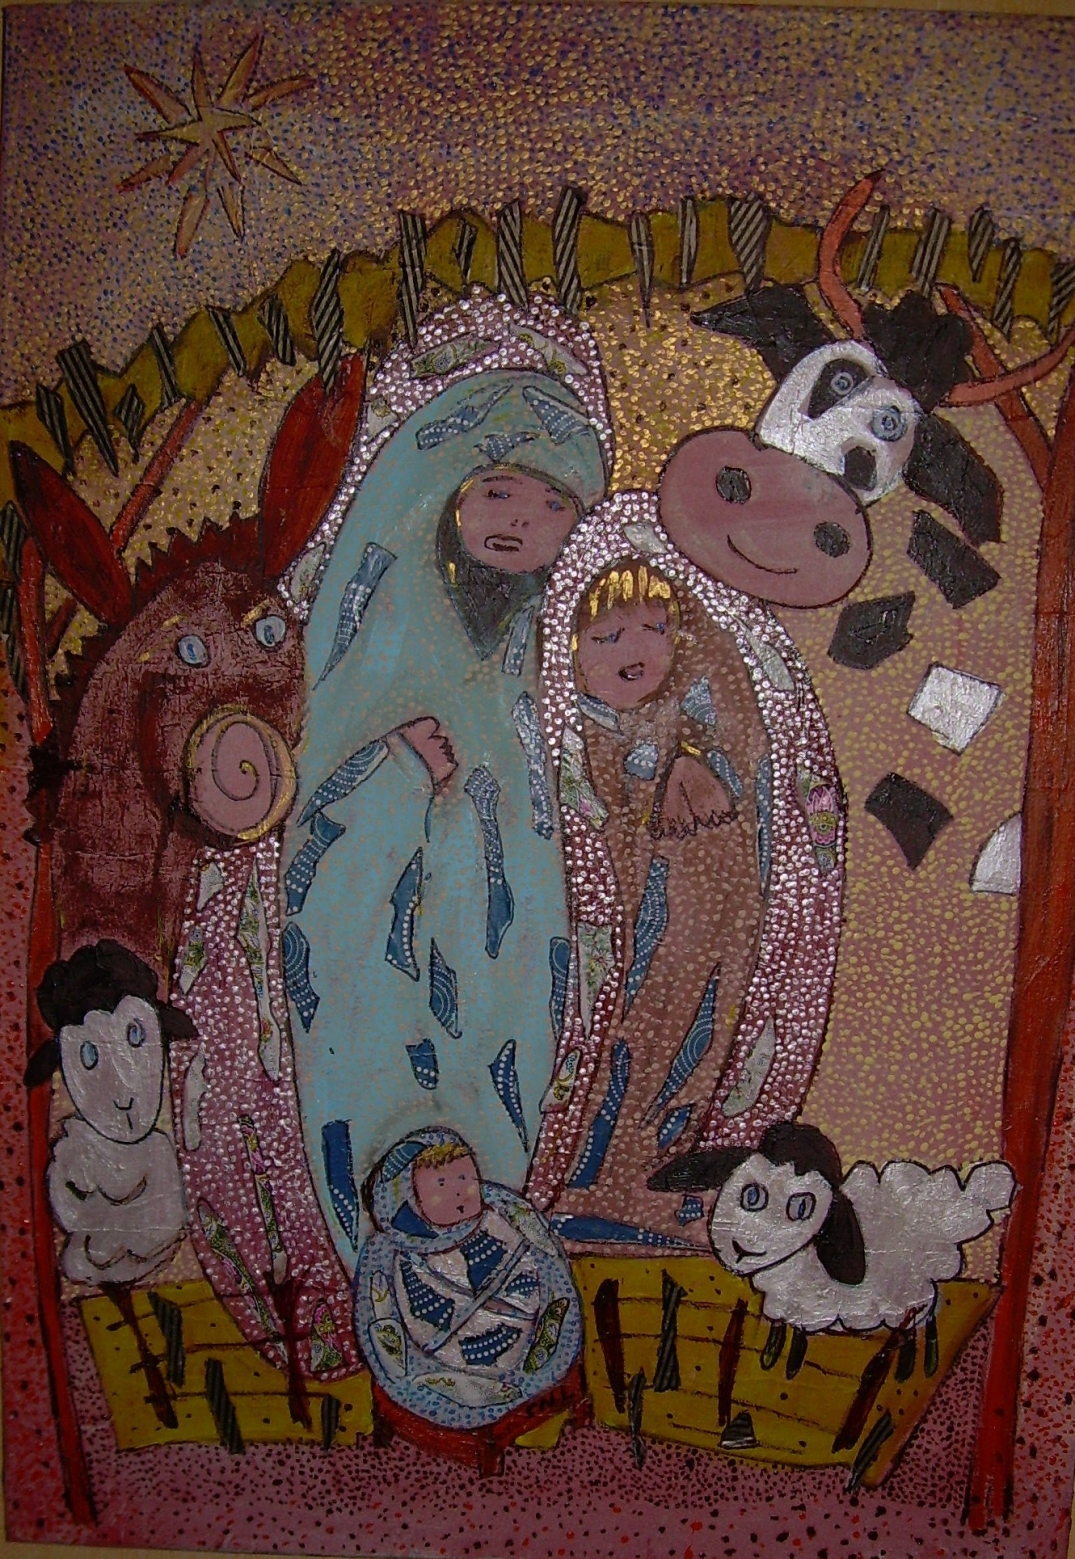 50x70cm La Crèche de Noël Collection privée